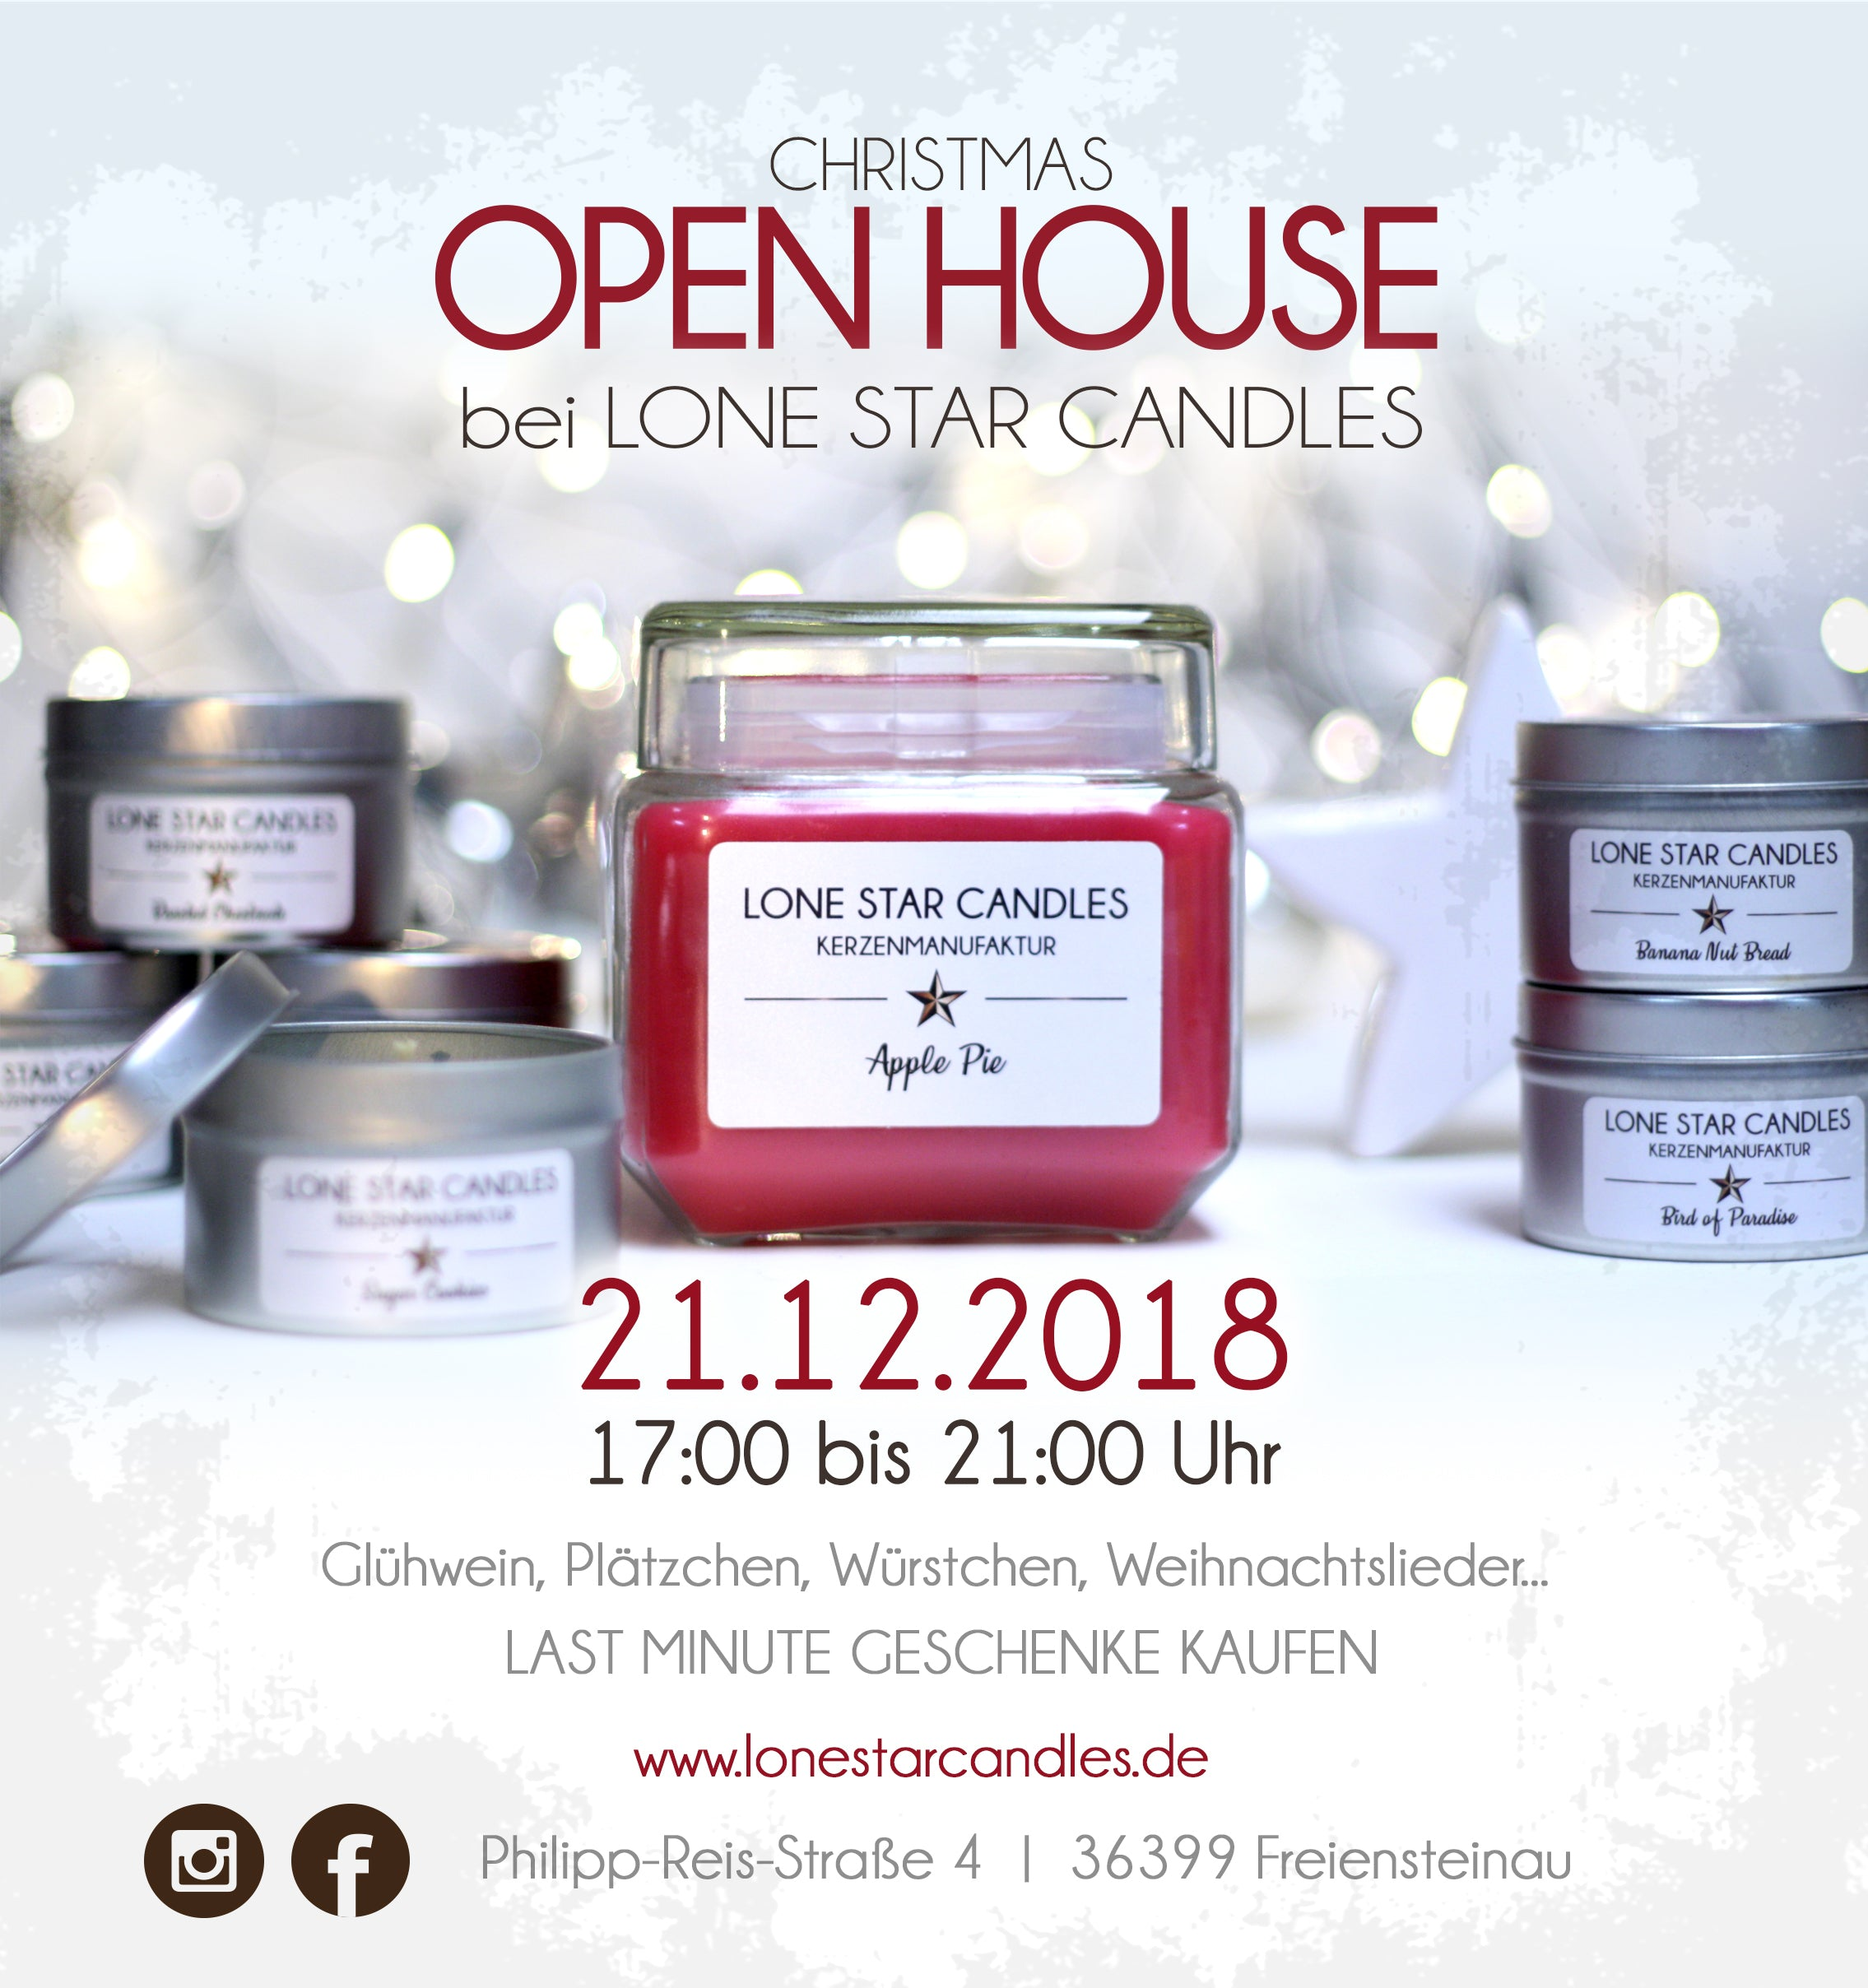 CHRISTMAS OPEN HOUSE BEI LONE STAR CANDLES